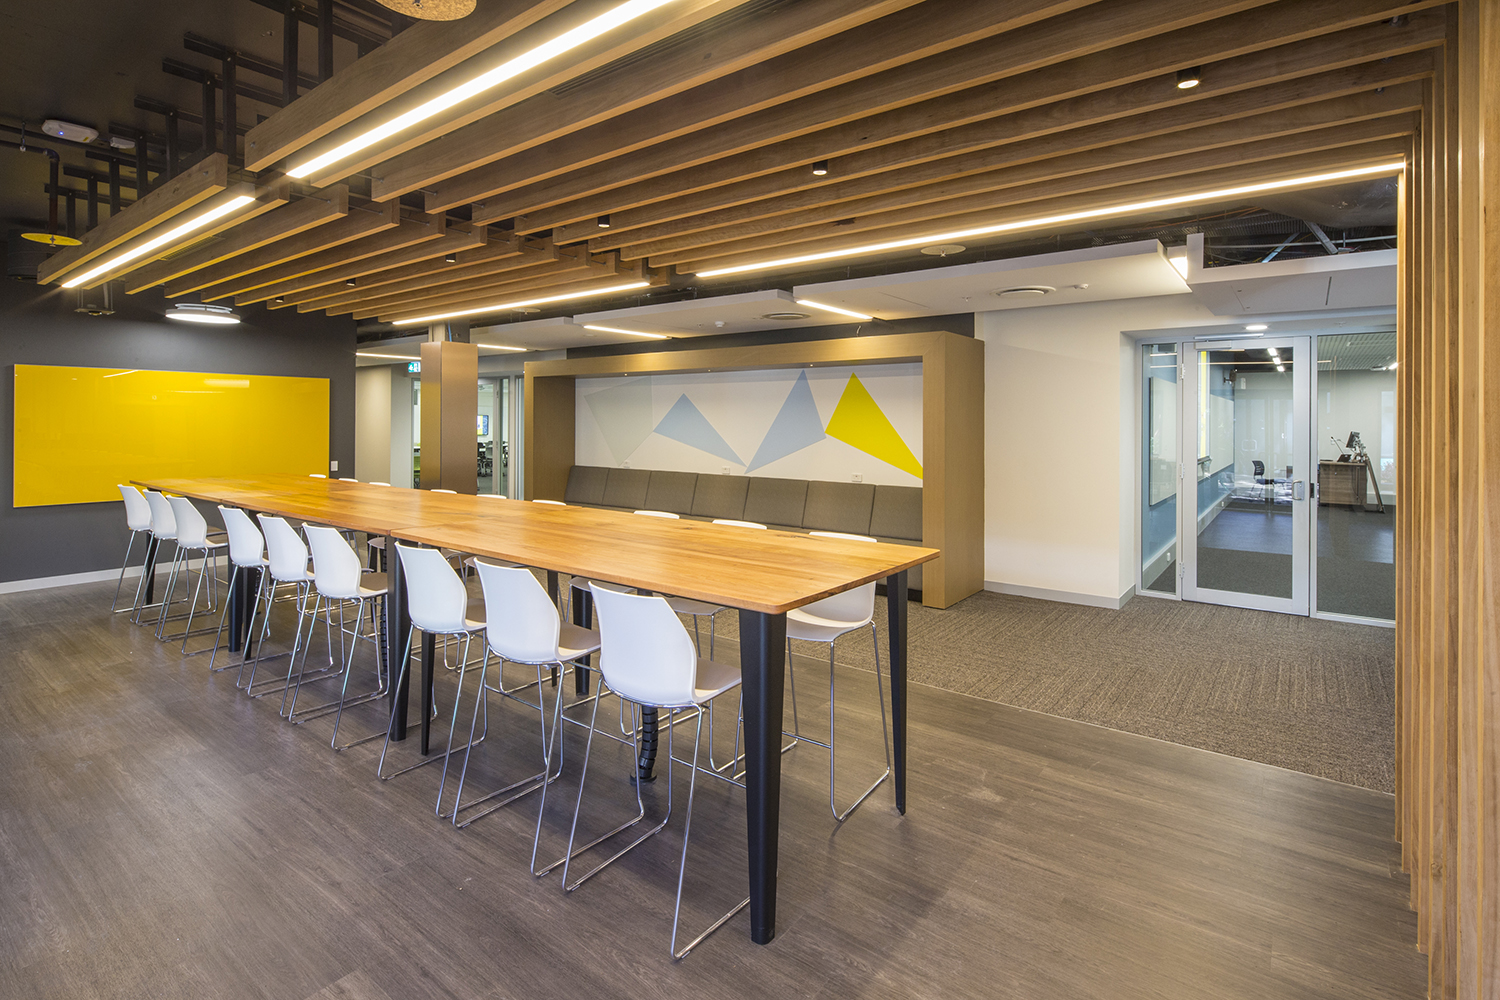 UNSW Mathews L1 CATS Student Study and Meeting Space Interior Design – Gardner Wetherill GW 4